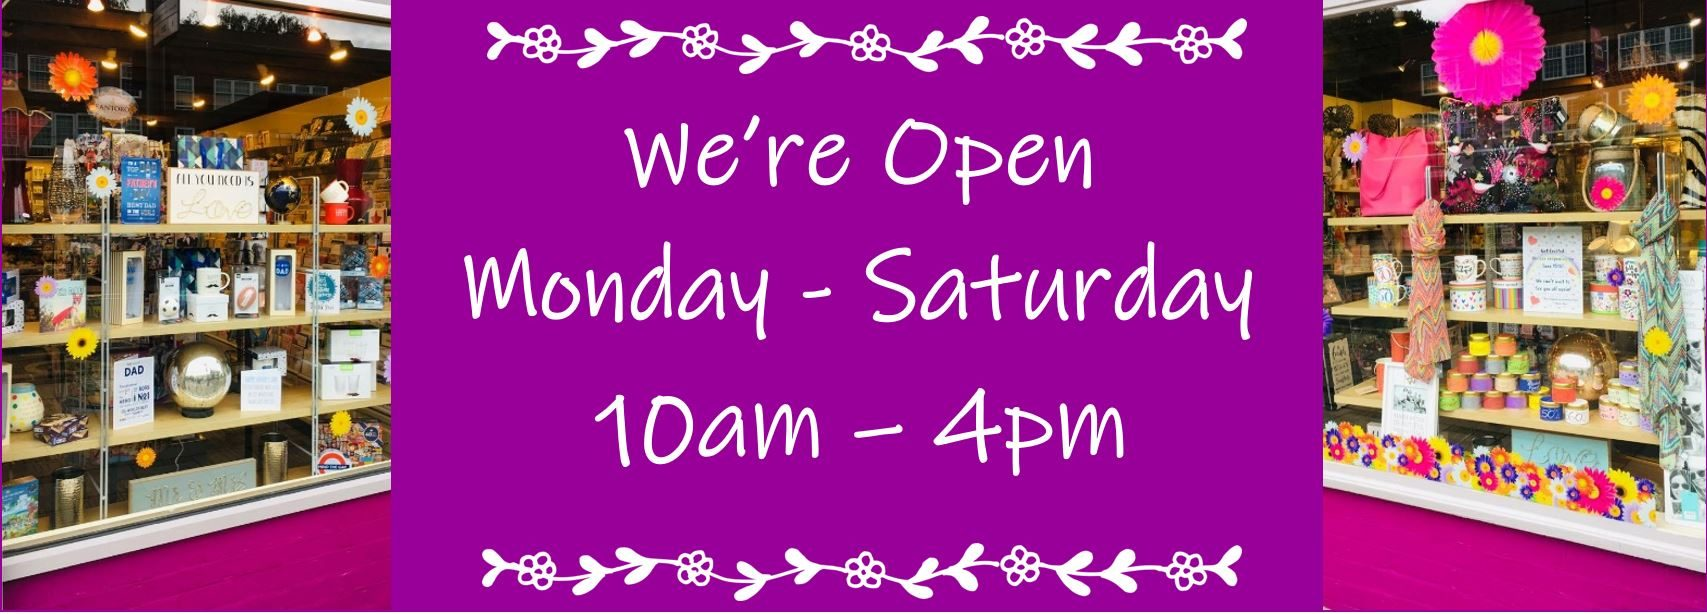 Temporary Opening Times 10 - 4pm